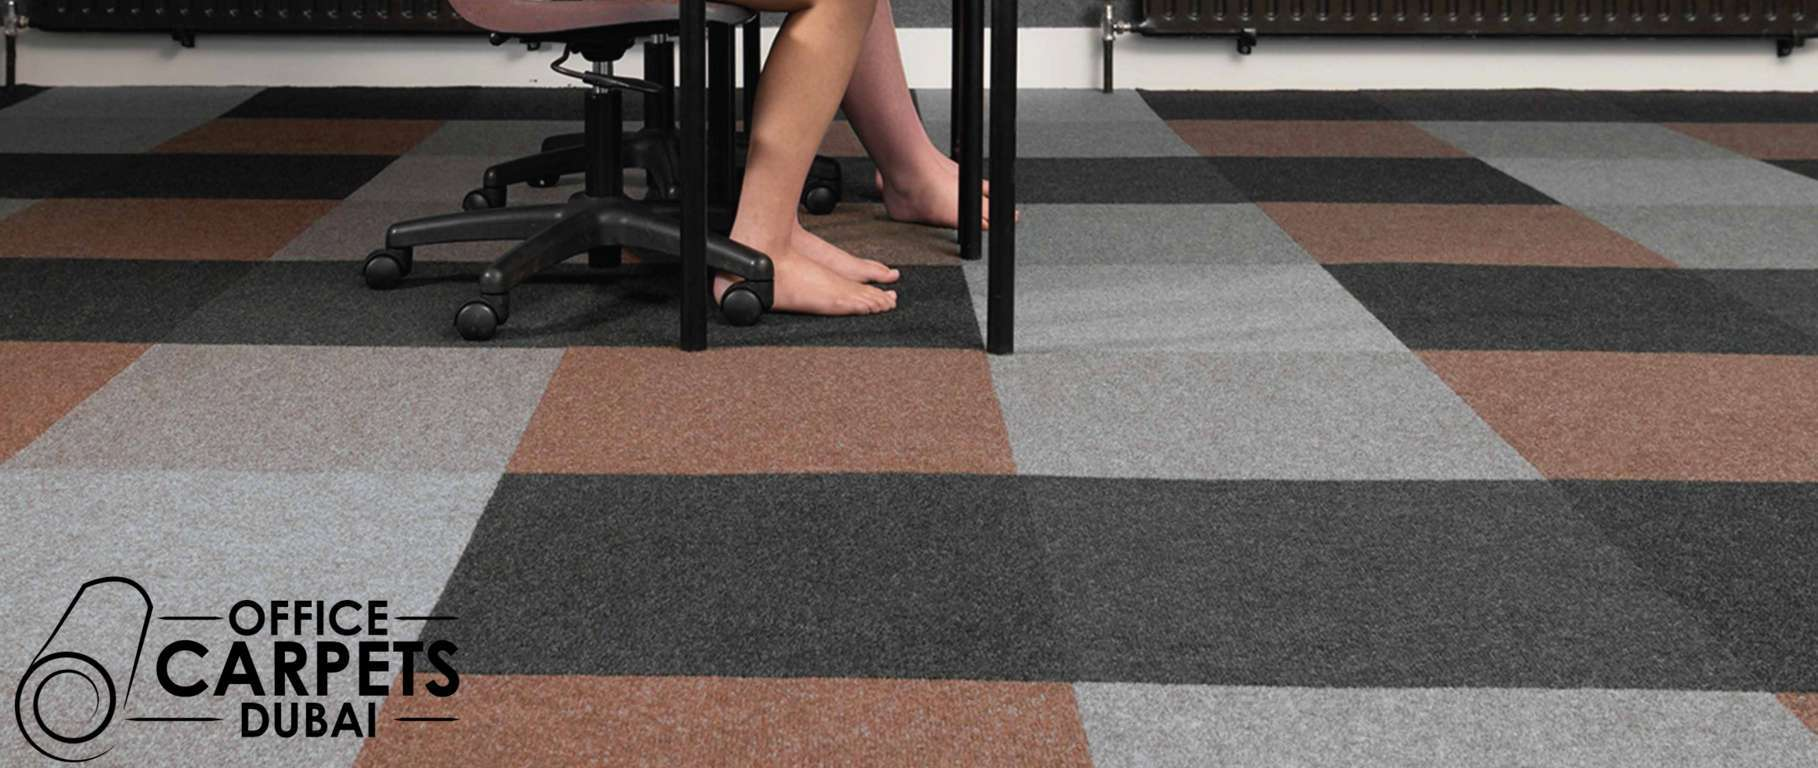 carpets tiles for office in dubai